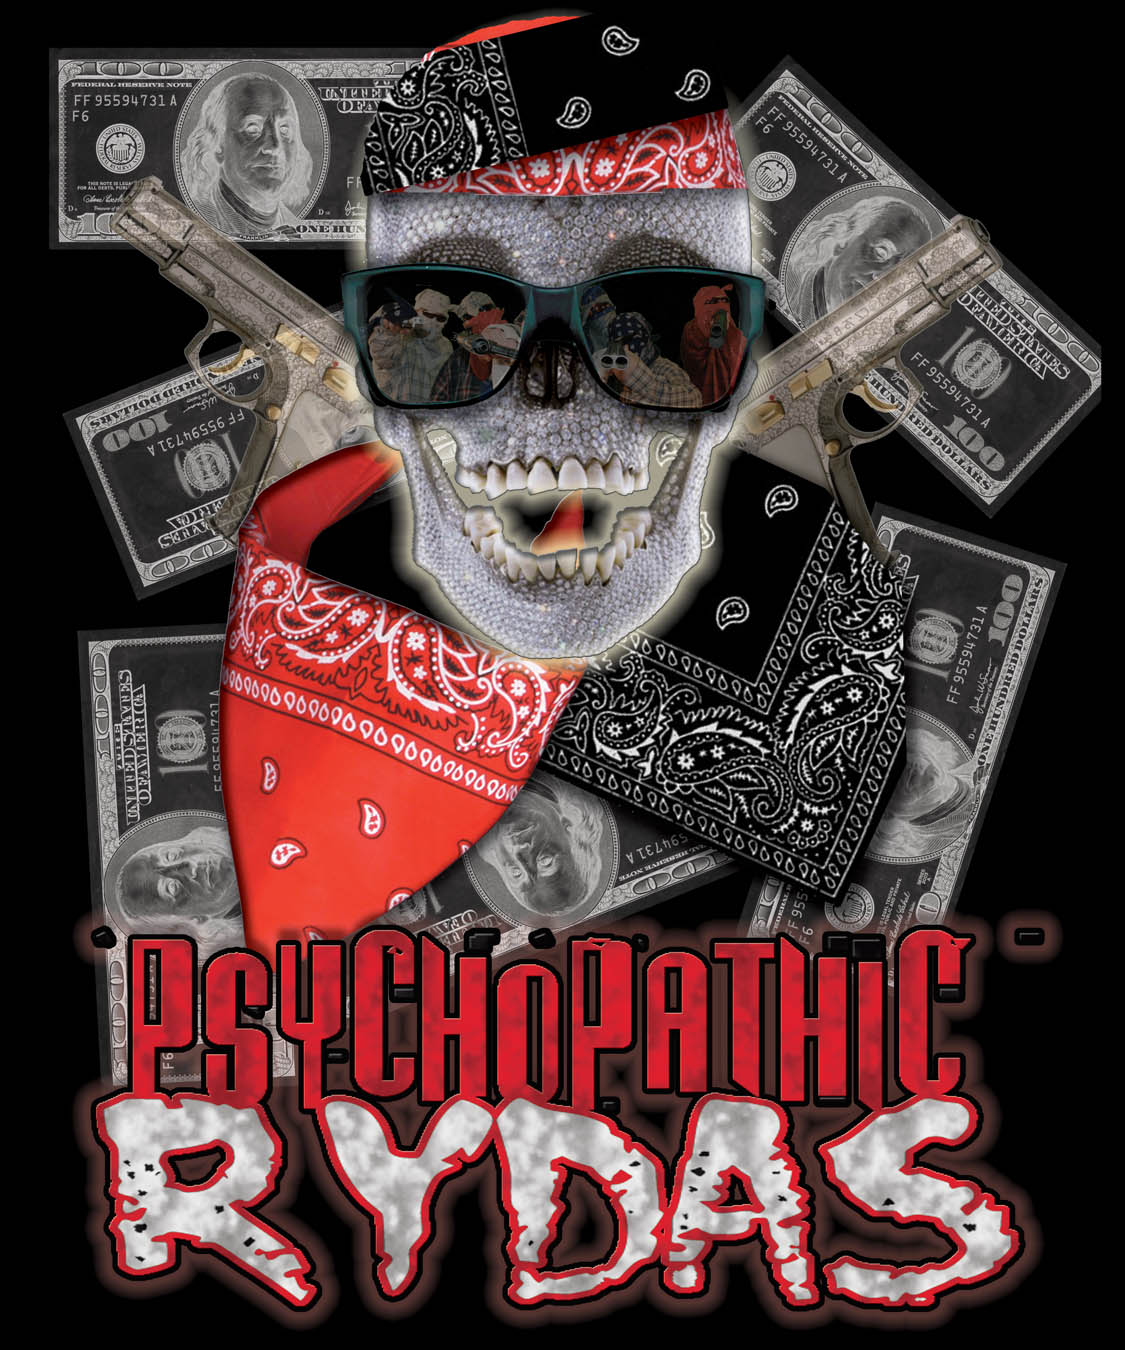 Psychopathic Records Wallpaper Psychopathic rydas 1125x1350